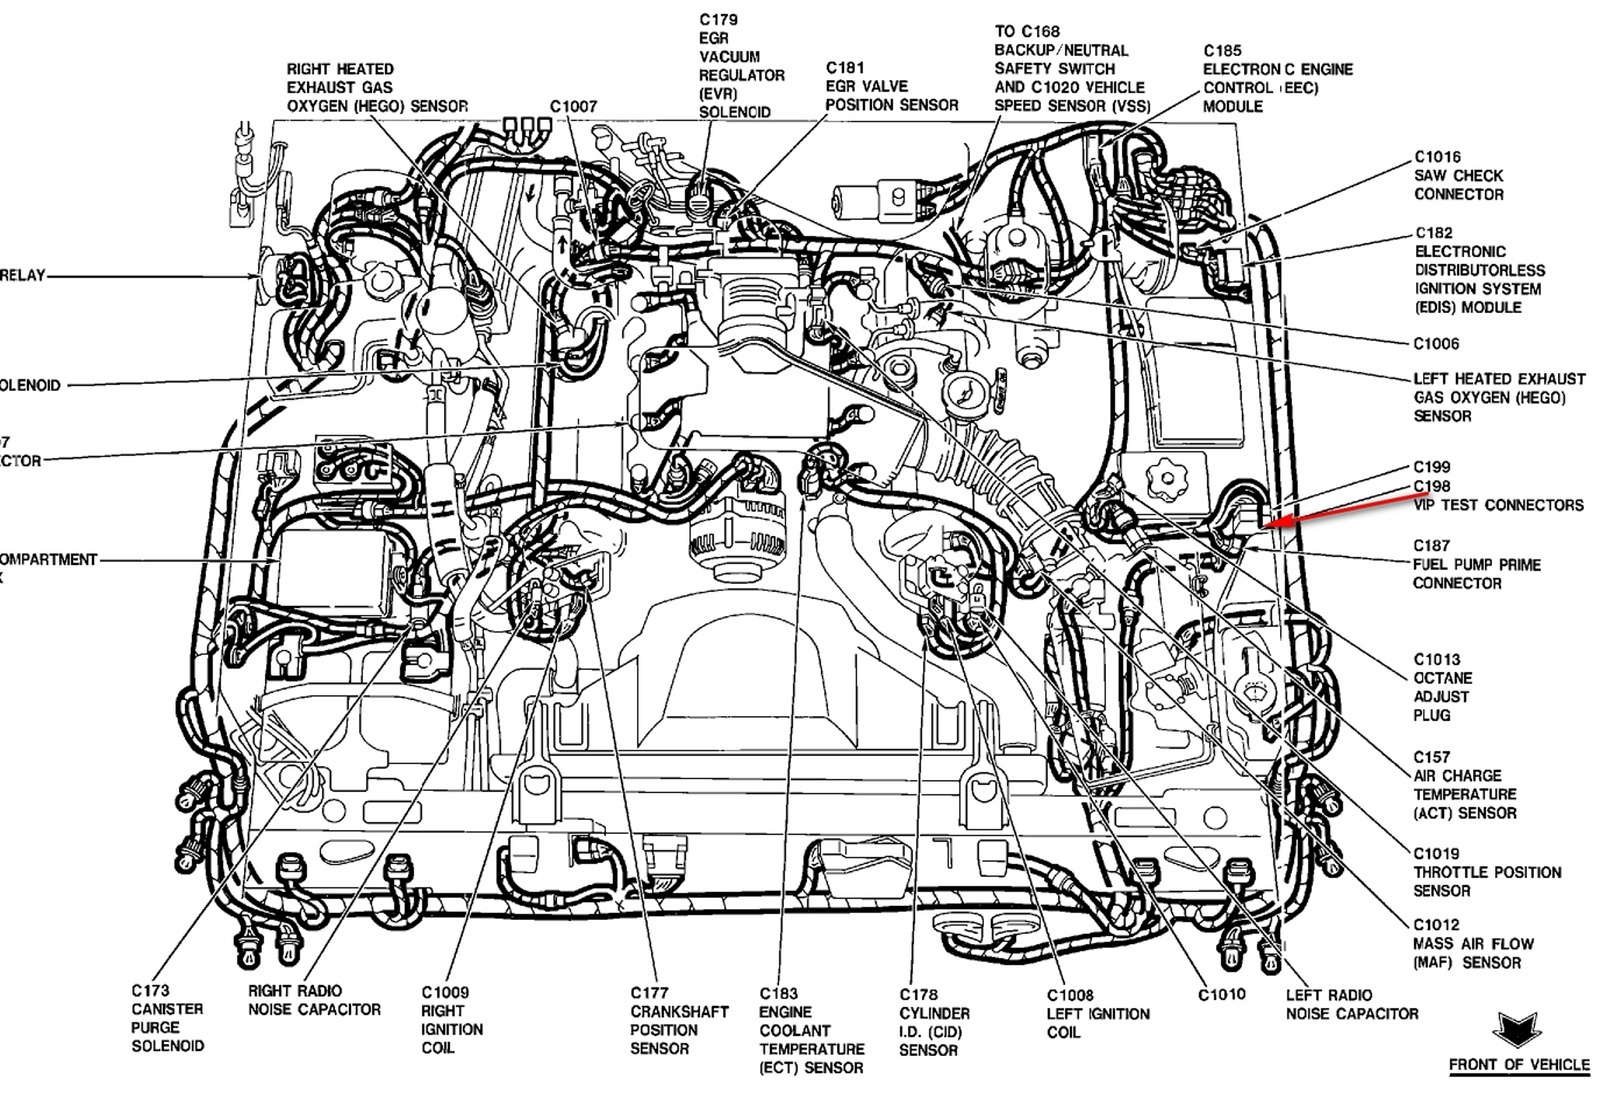 4x4 Wiring Diagrams 2001 Ford F 250 also Discussion T16270 ds545905 moreover C say 09 b in addition 99 Pontiac Grand Am Wiring Diagram in addition  on 07 chevy tahoe 5 3 throttle position sensor check